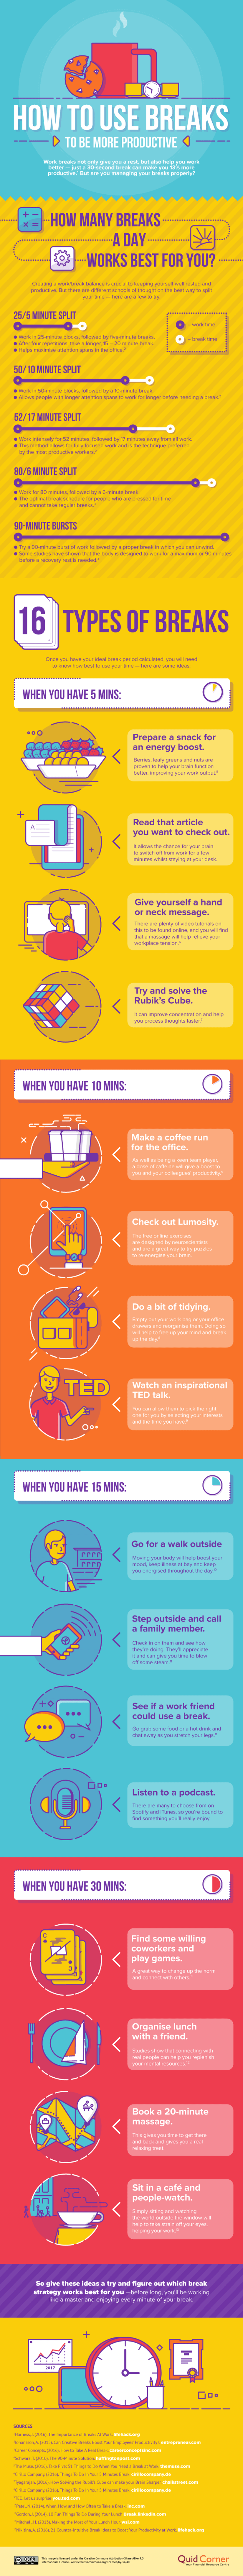 Top Tips To Manage Work Breaks Properly Boost Productivity Productivity Infographic Time Management Productivity